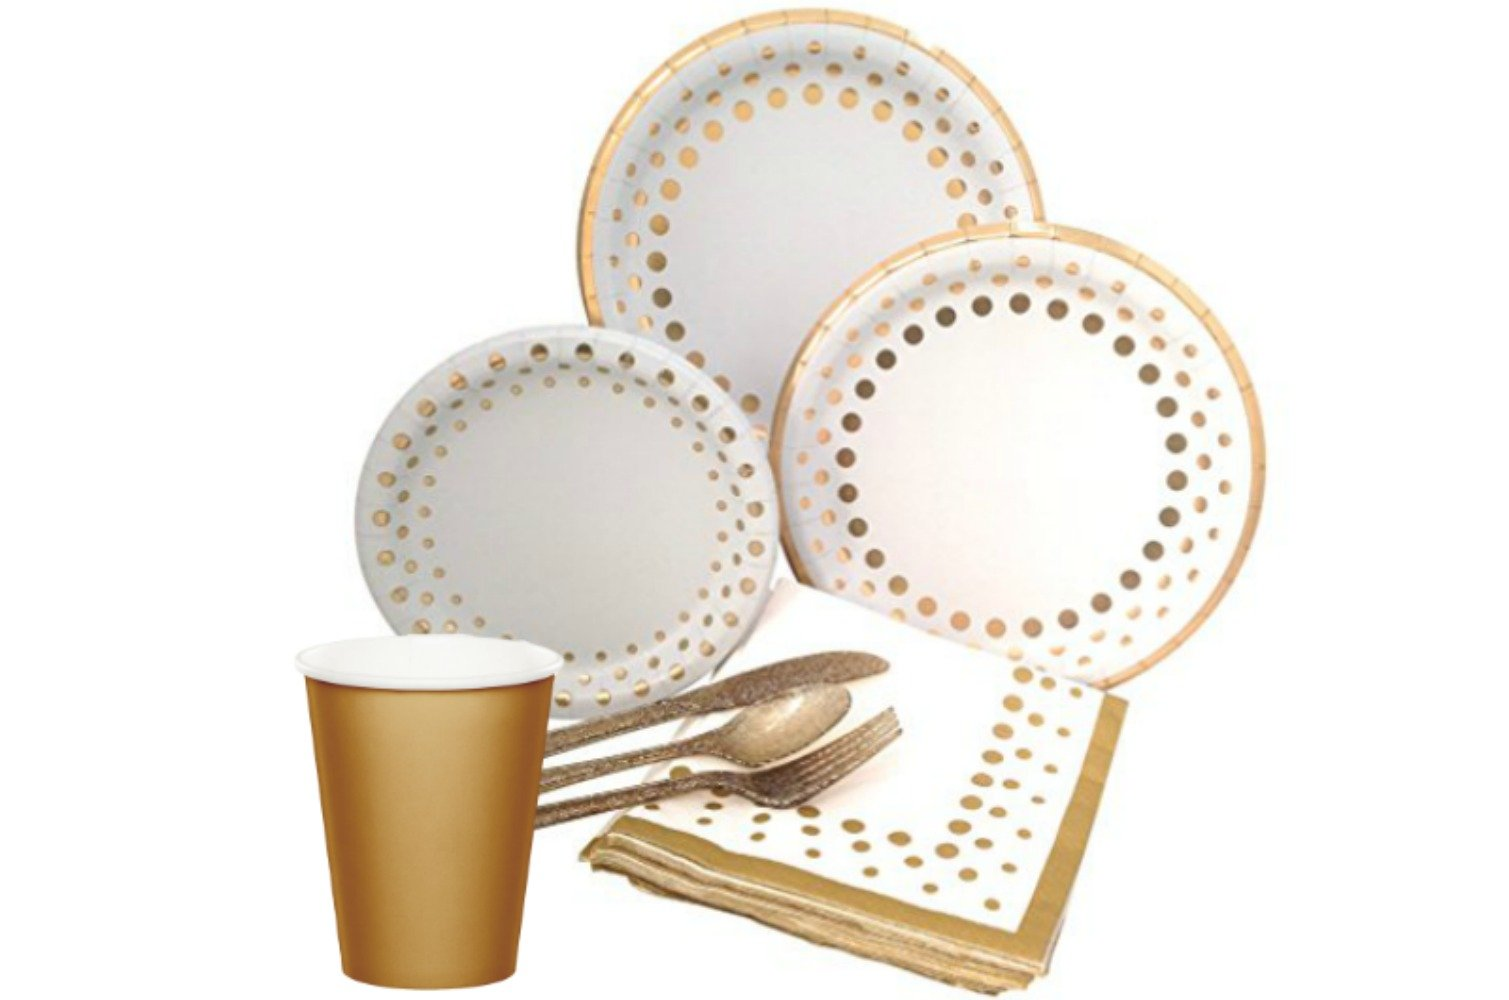 Gold Polka Dot Party Supply Pack for 24 Guests! Bundle Includes Elegant Metallic Foil Paper Plates and Napkins, Glitter Silverware & Hot/Cold Cups for 24 Guests